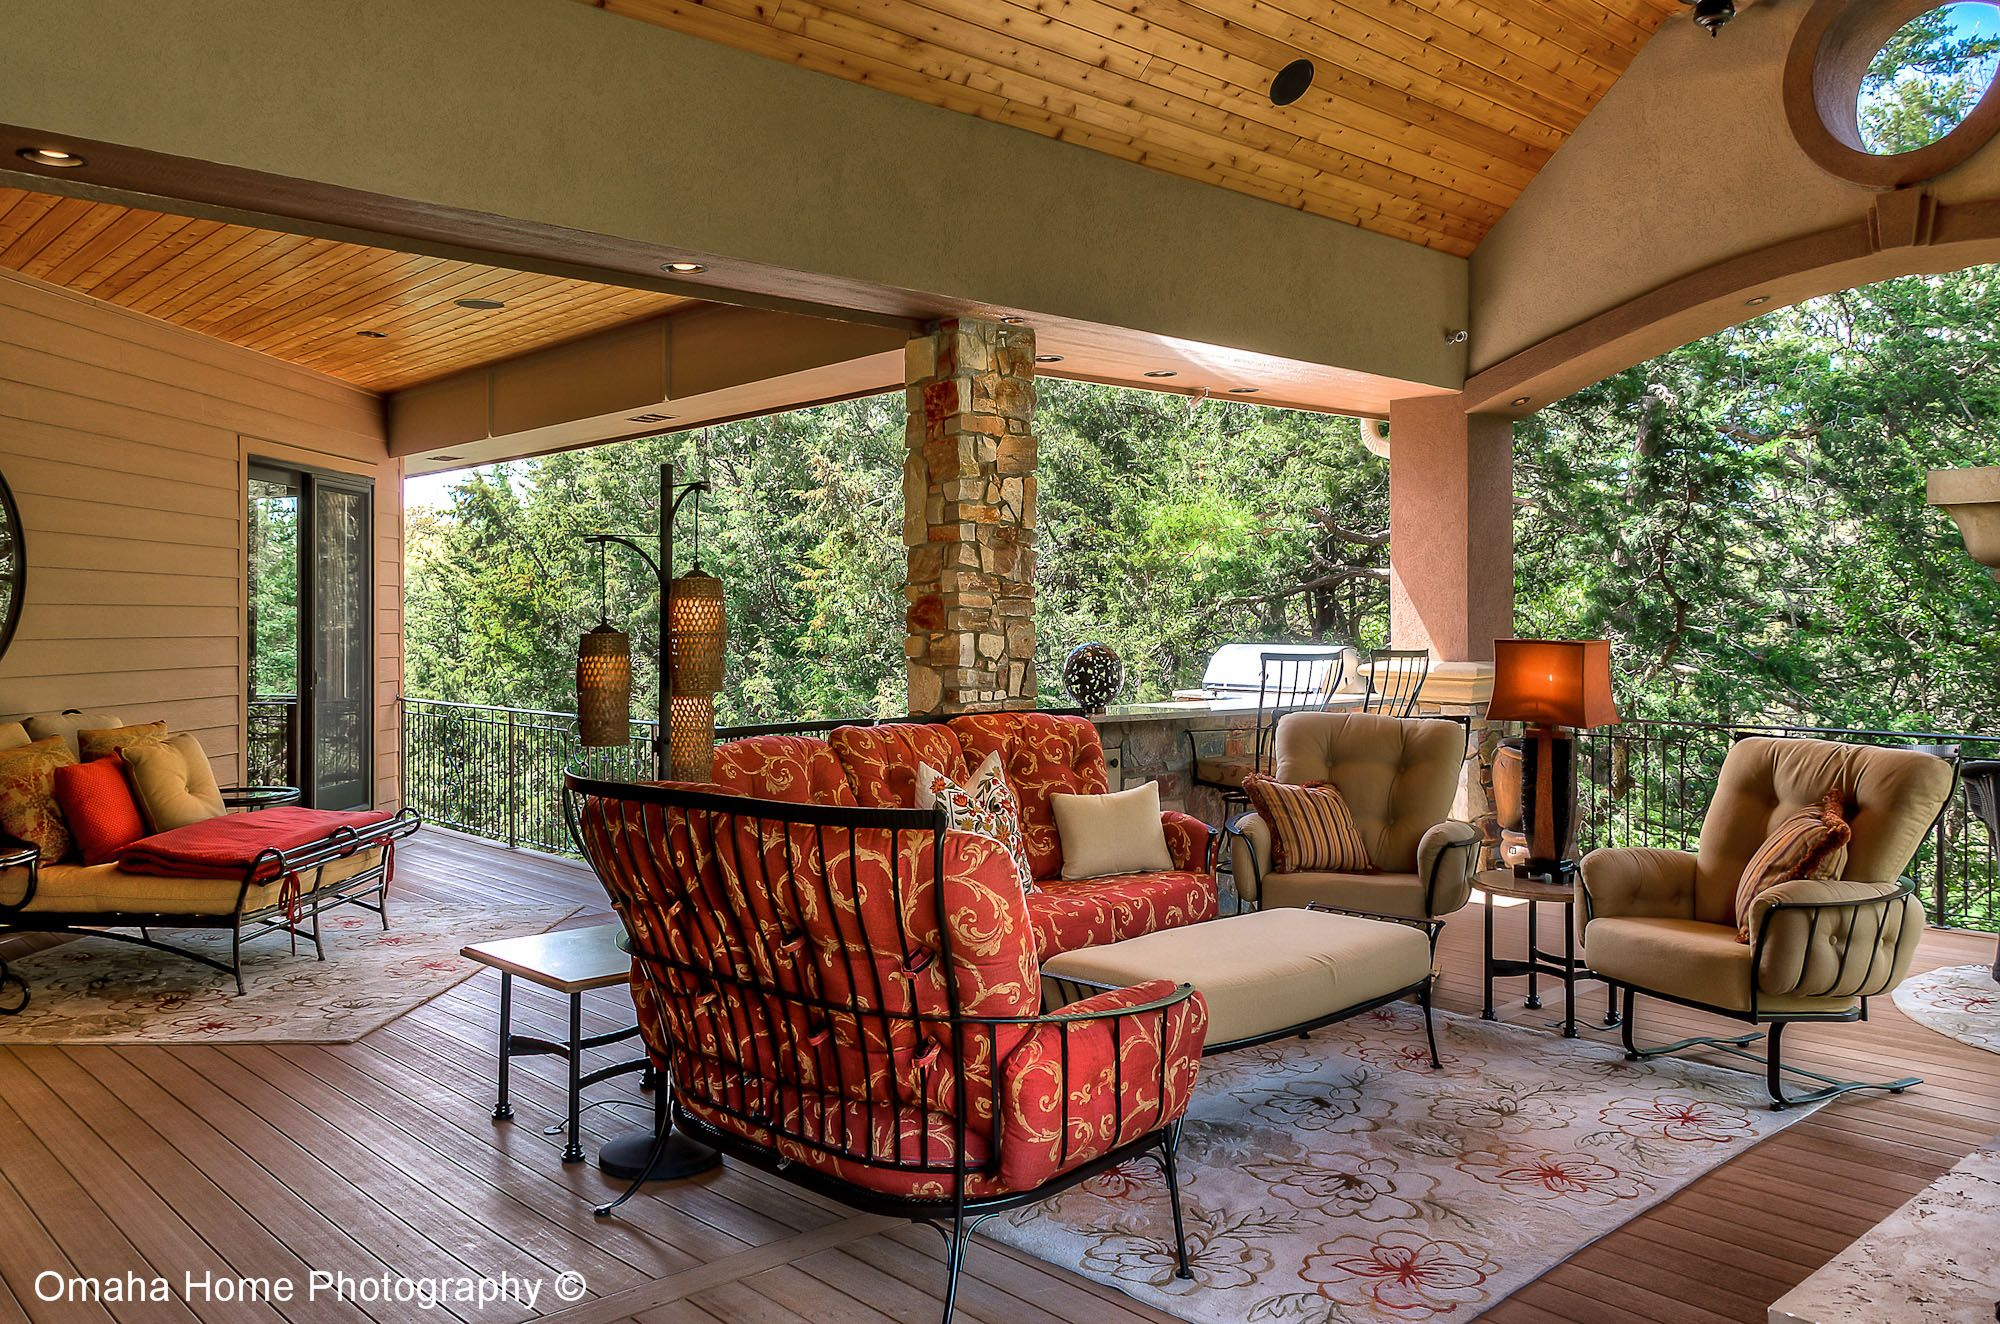 Deck Of Home In The Sanctuary Omaha Ne Listed And Sold By Pat Lichter Np Dodge Real Estate Outdoor Living Outdoor Living Space Outdoor Decor